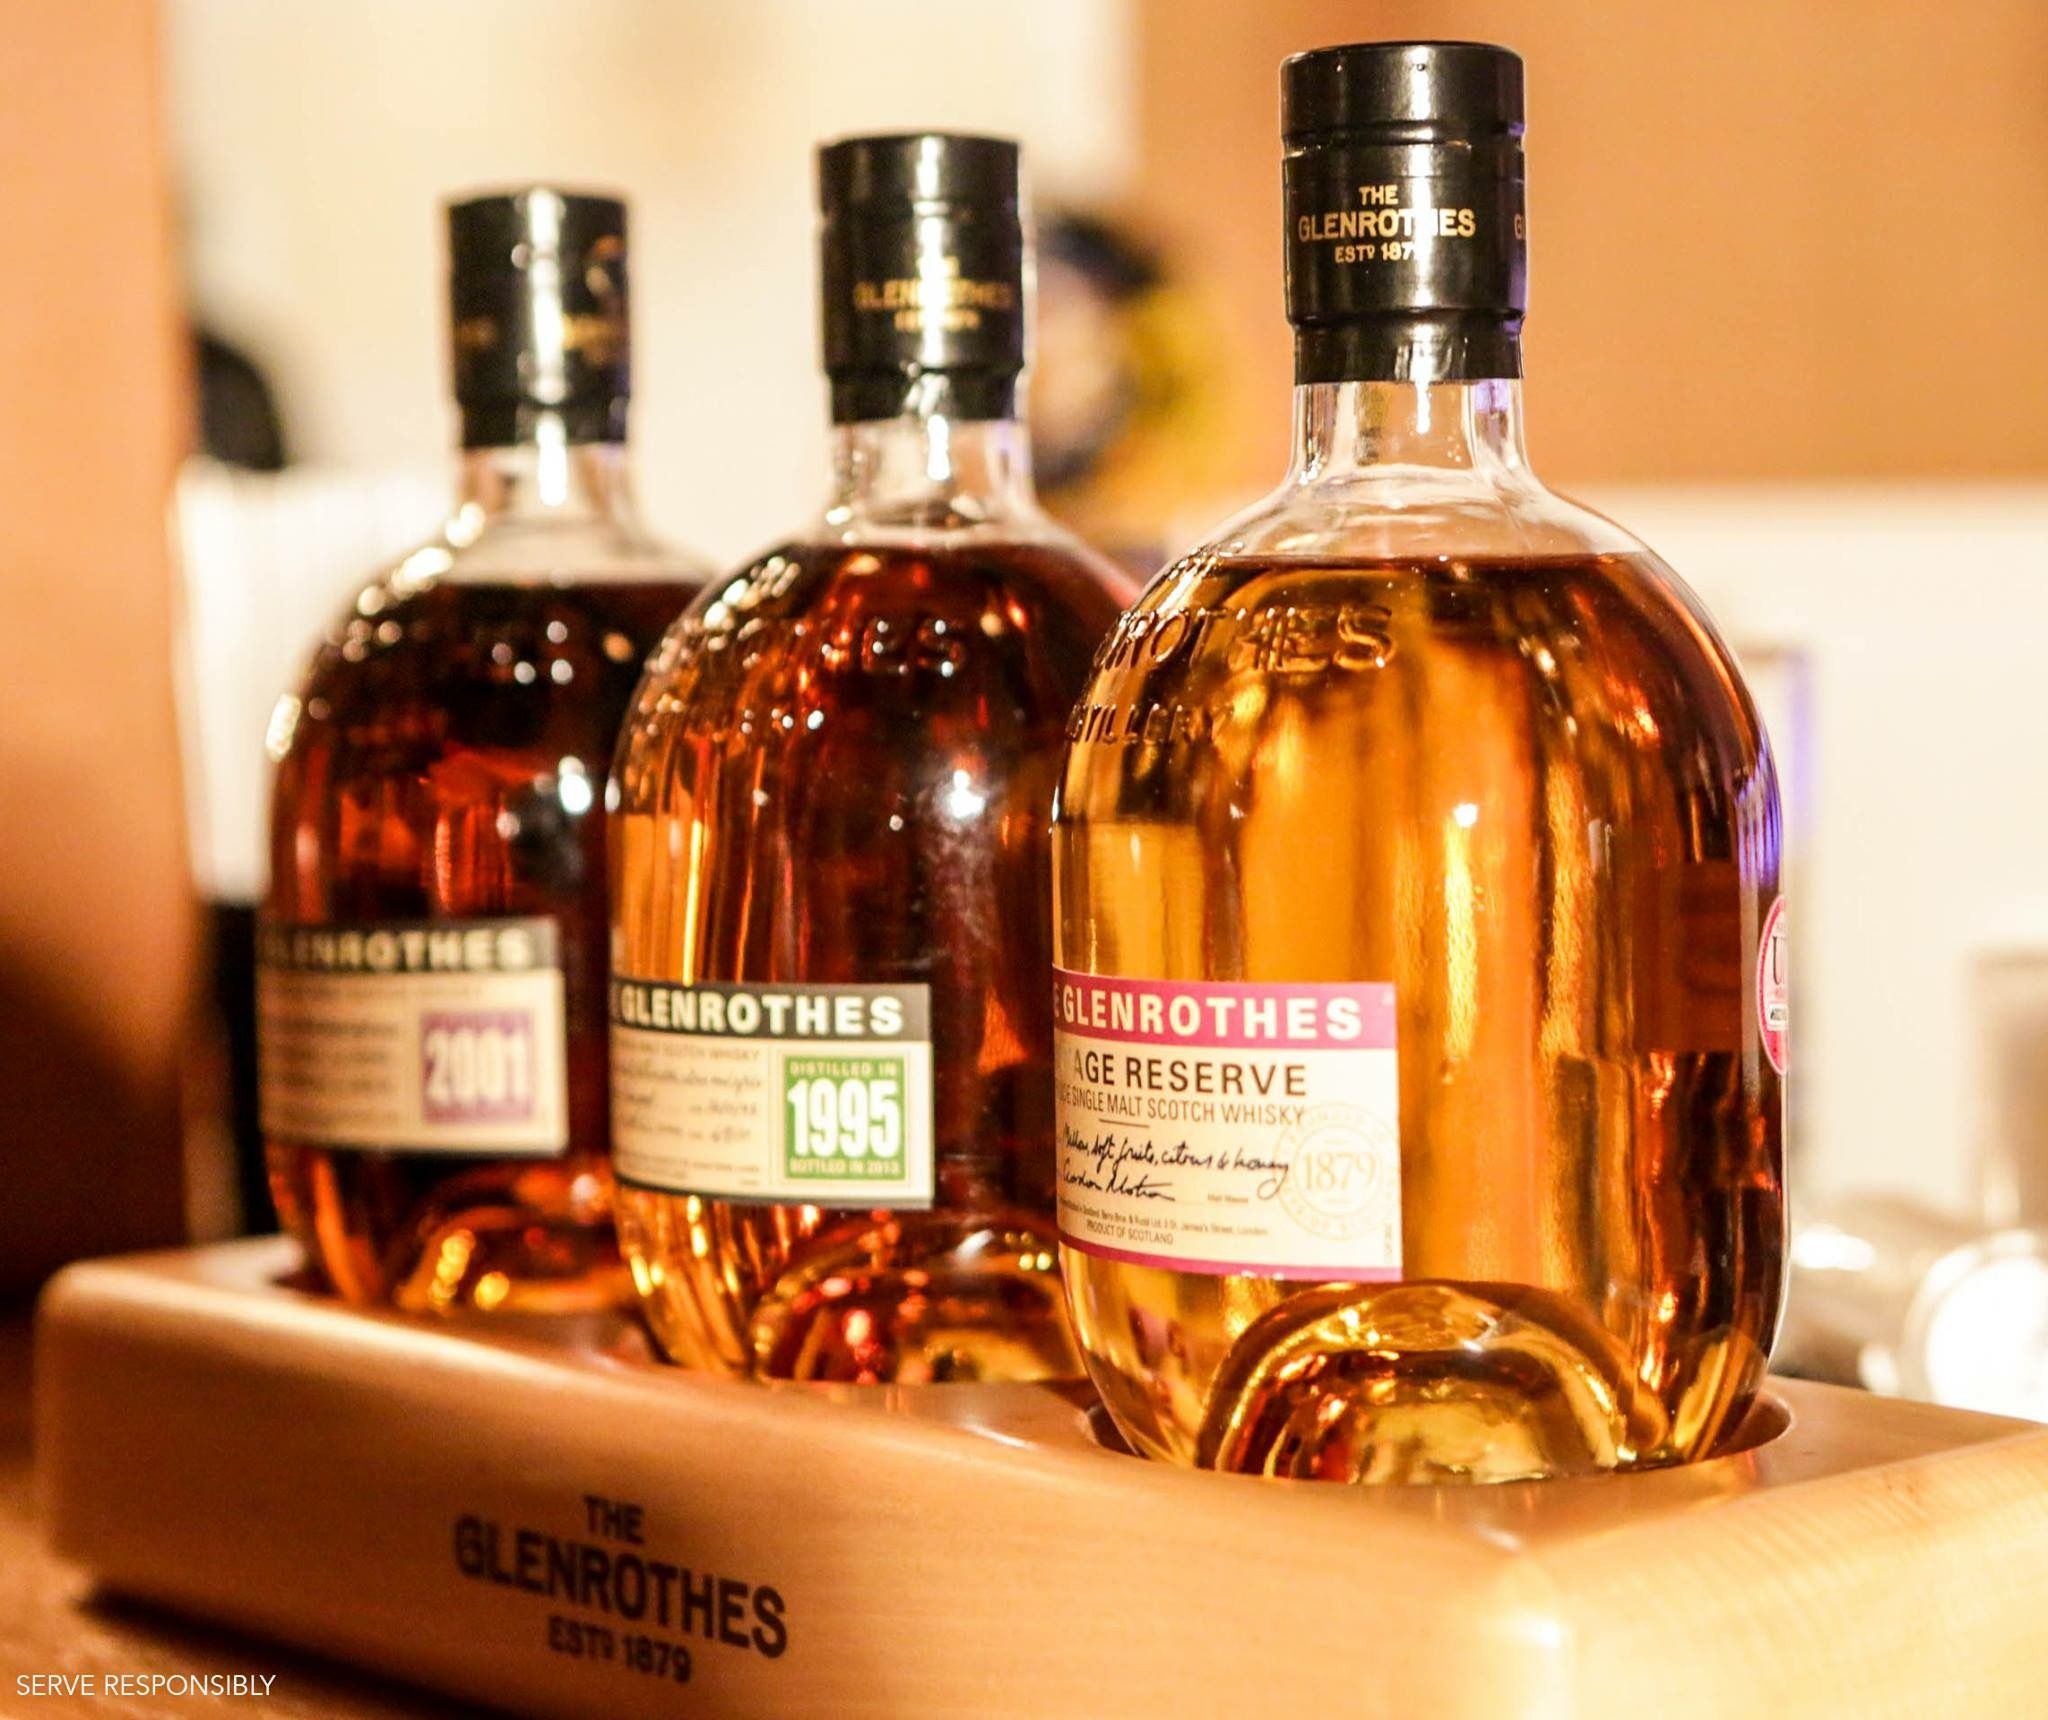 Glenrothes choice